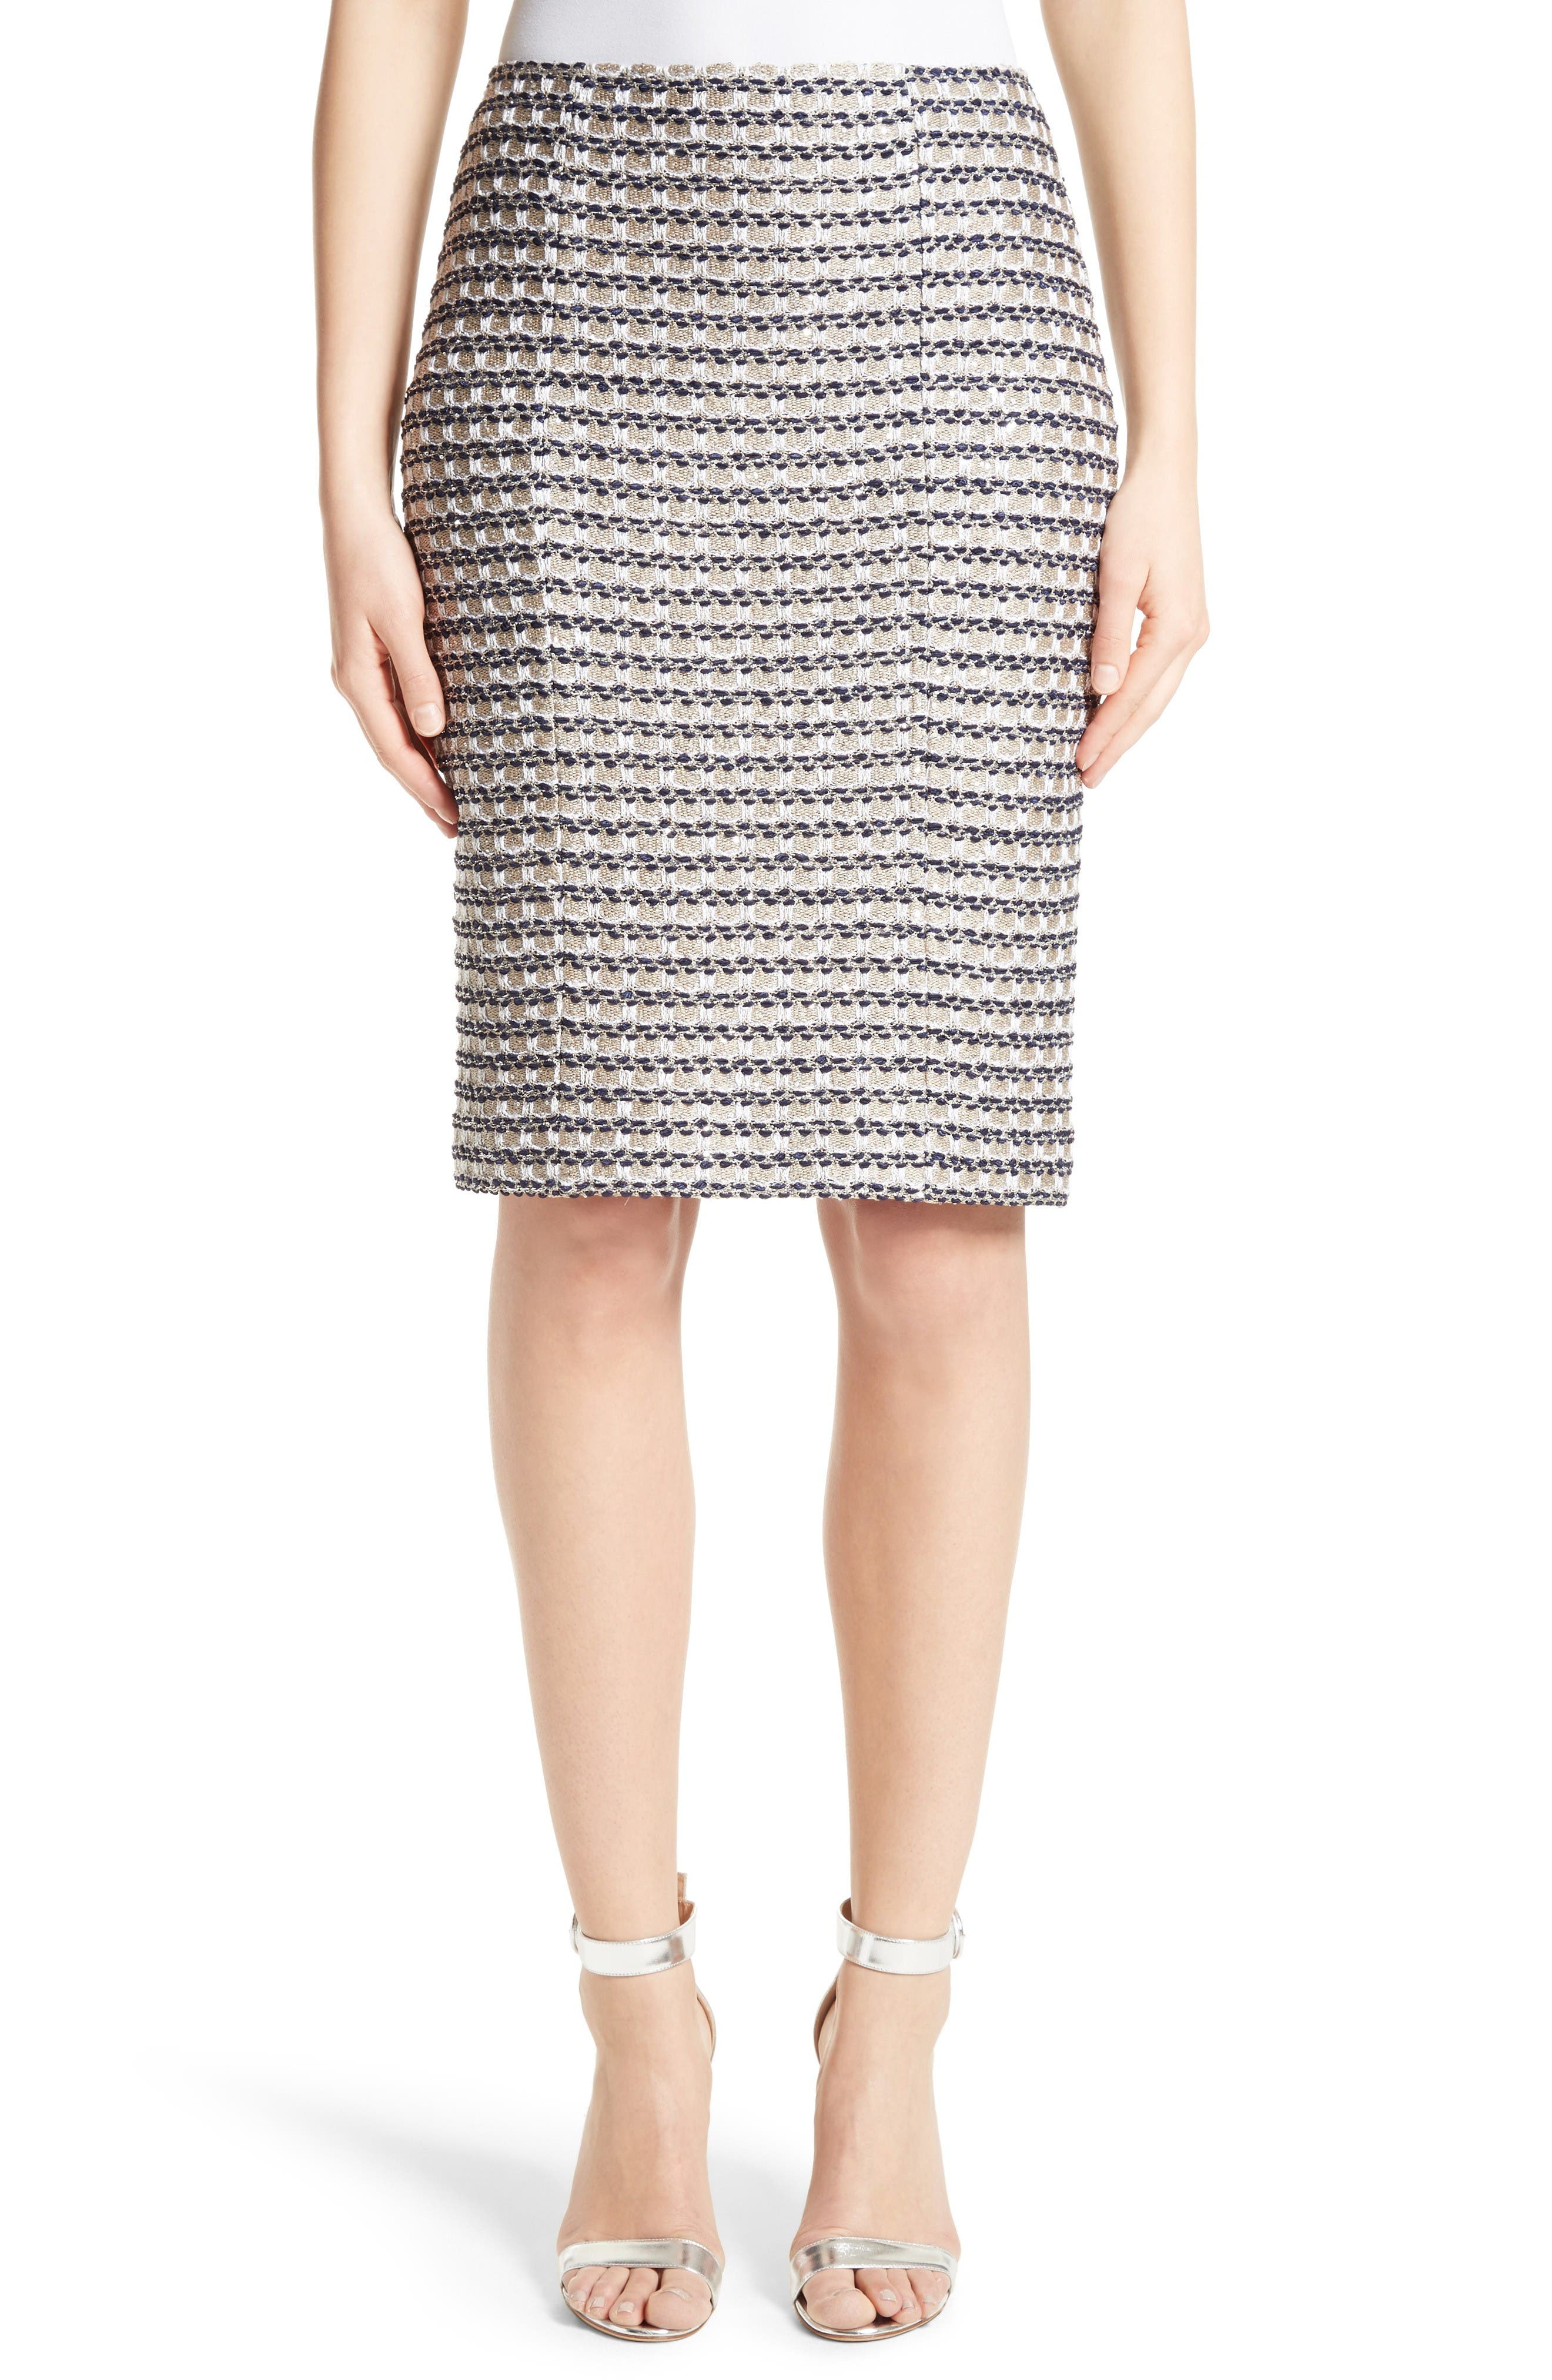 Alternate Image 1 Selected - St. John Collection Vany Tweed Knit Pencil Skirt